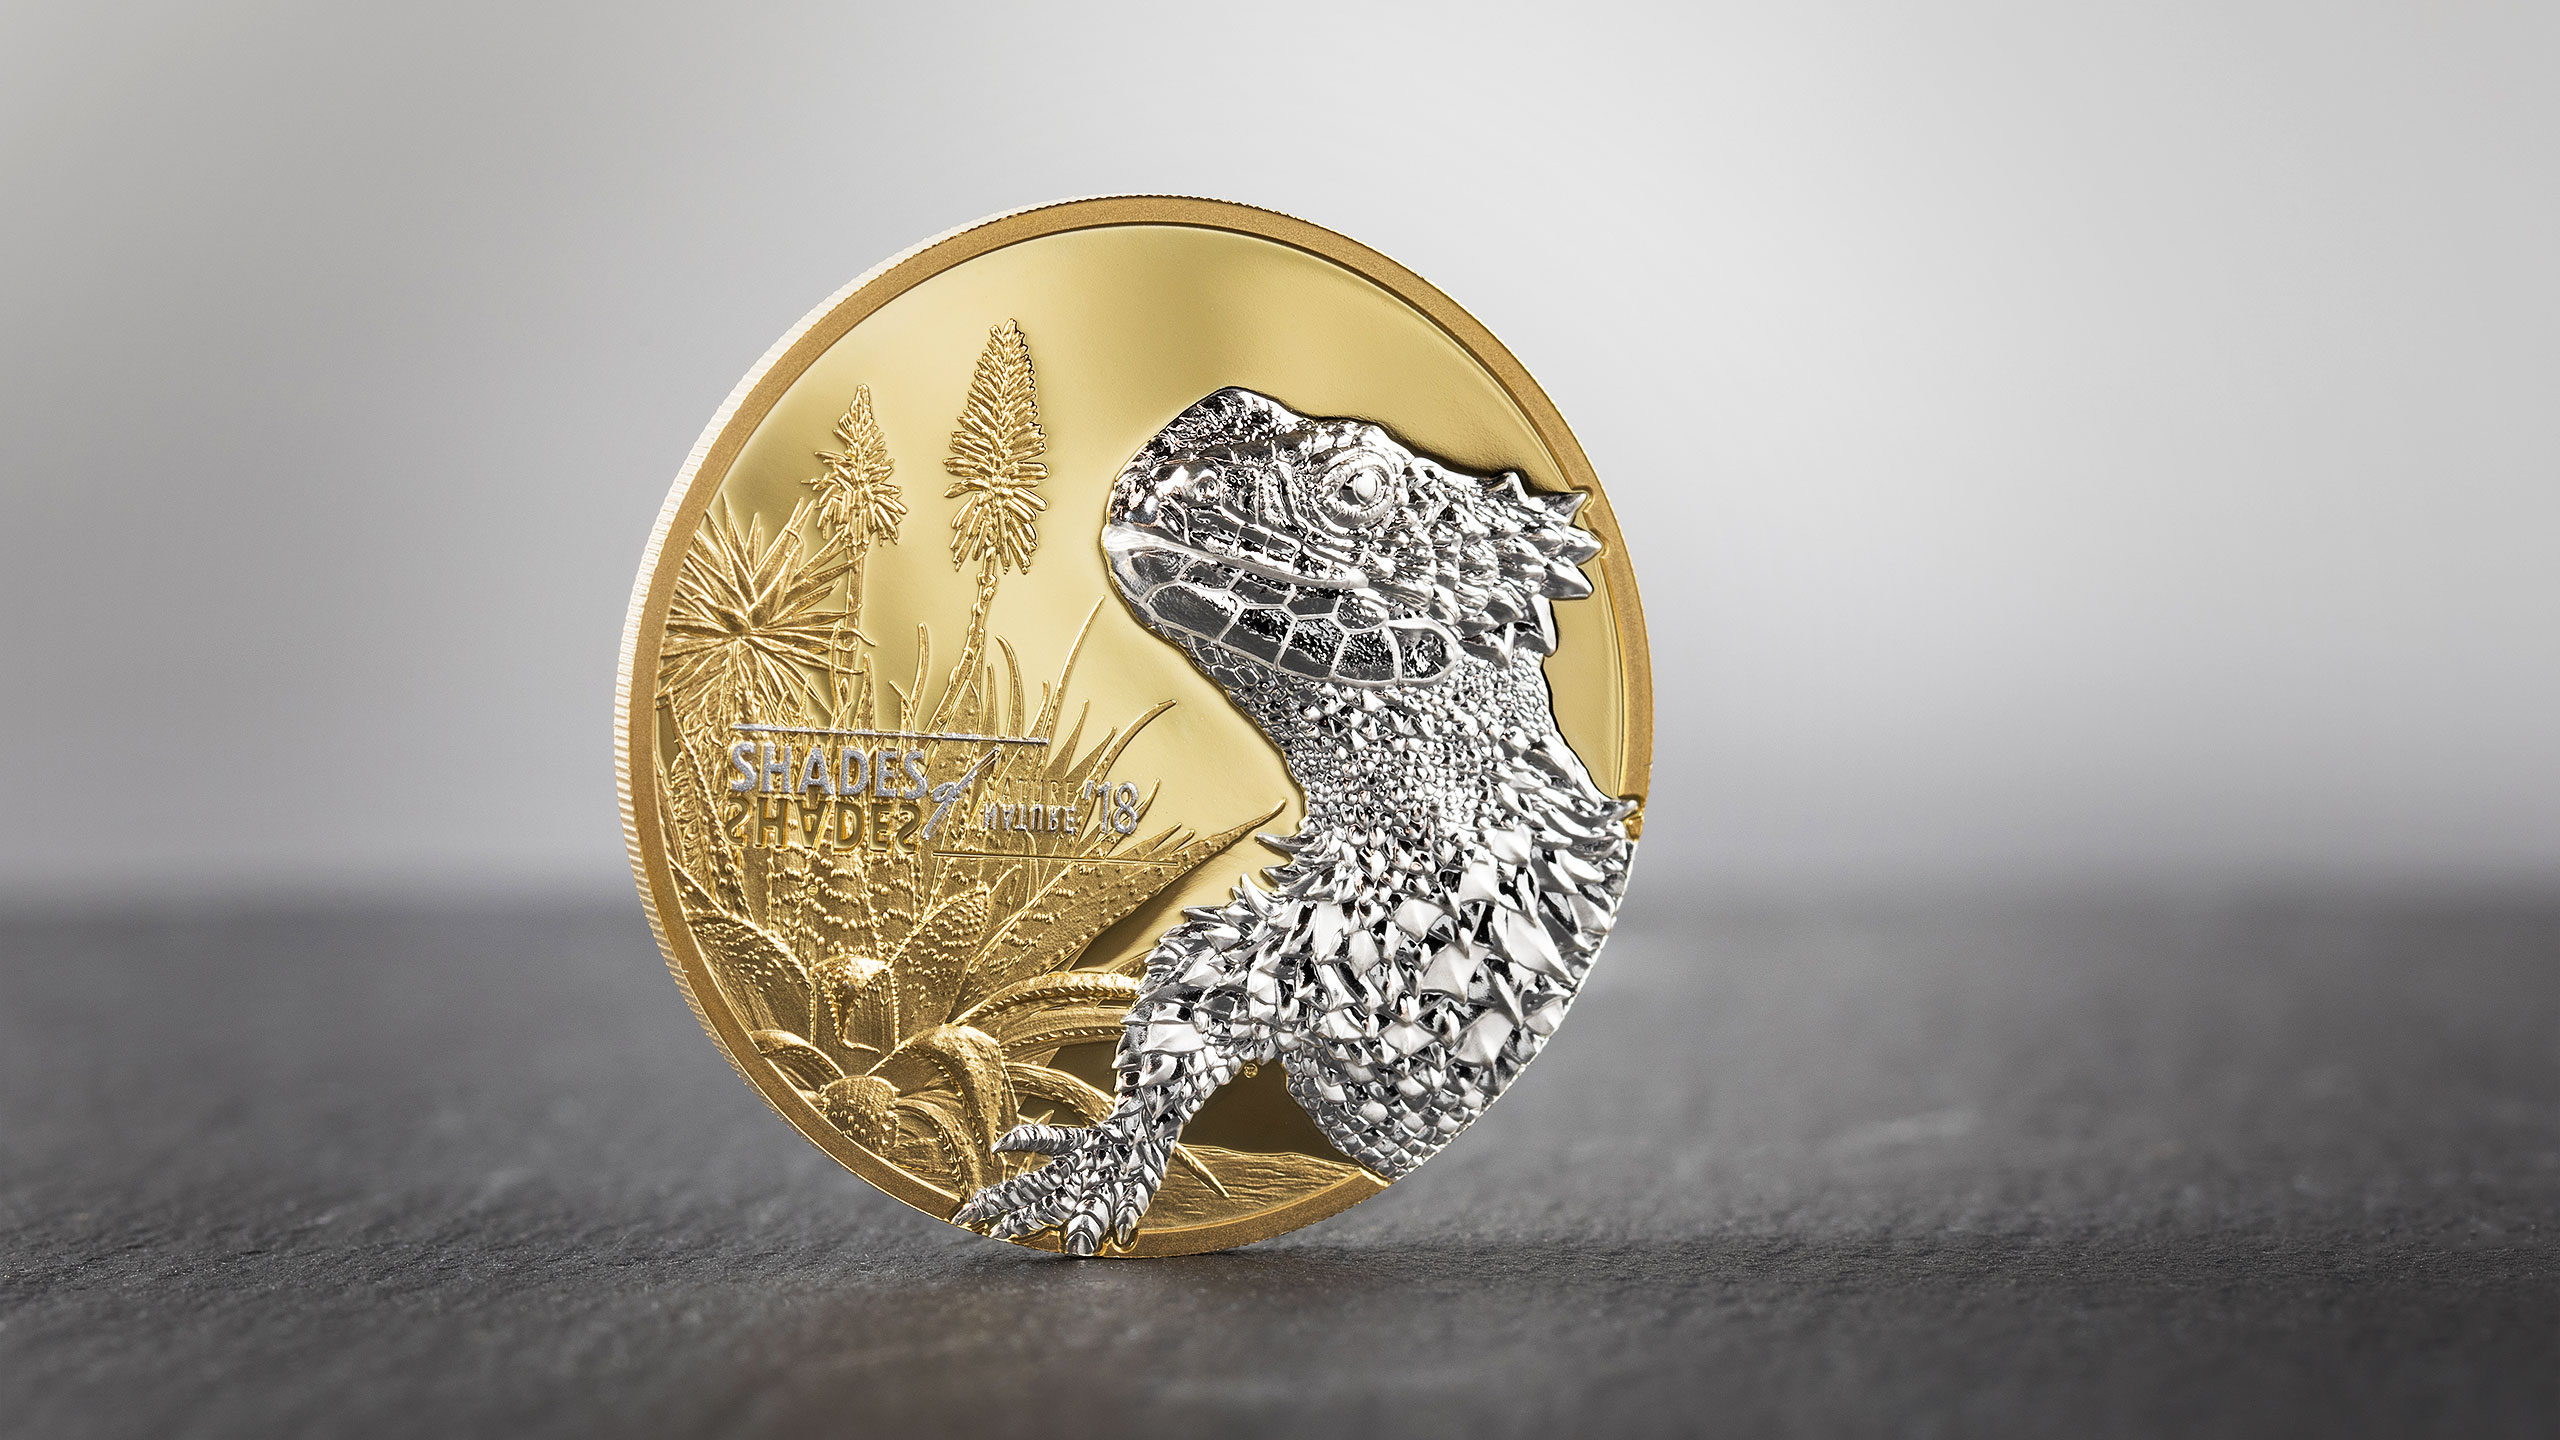 Shades of Nature silver coin micro minted with smartminting high relief by CIT Coin Invest AG and B H Mayer mint showing sungazer lizard Smaug